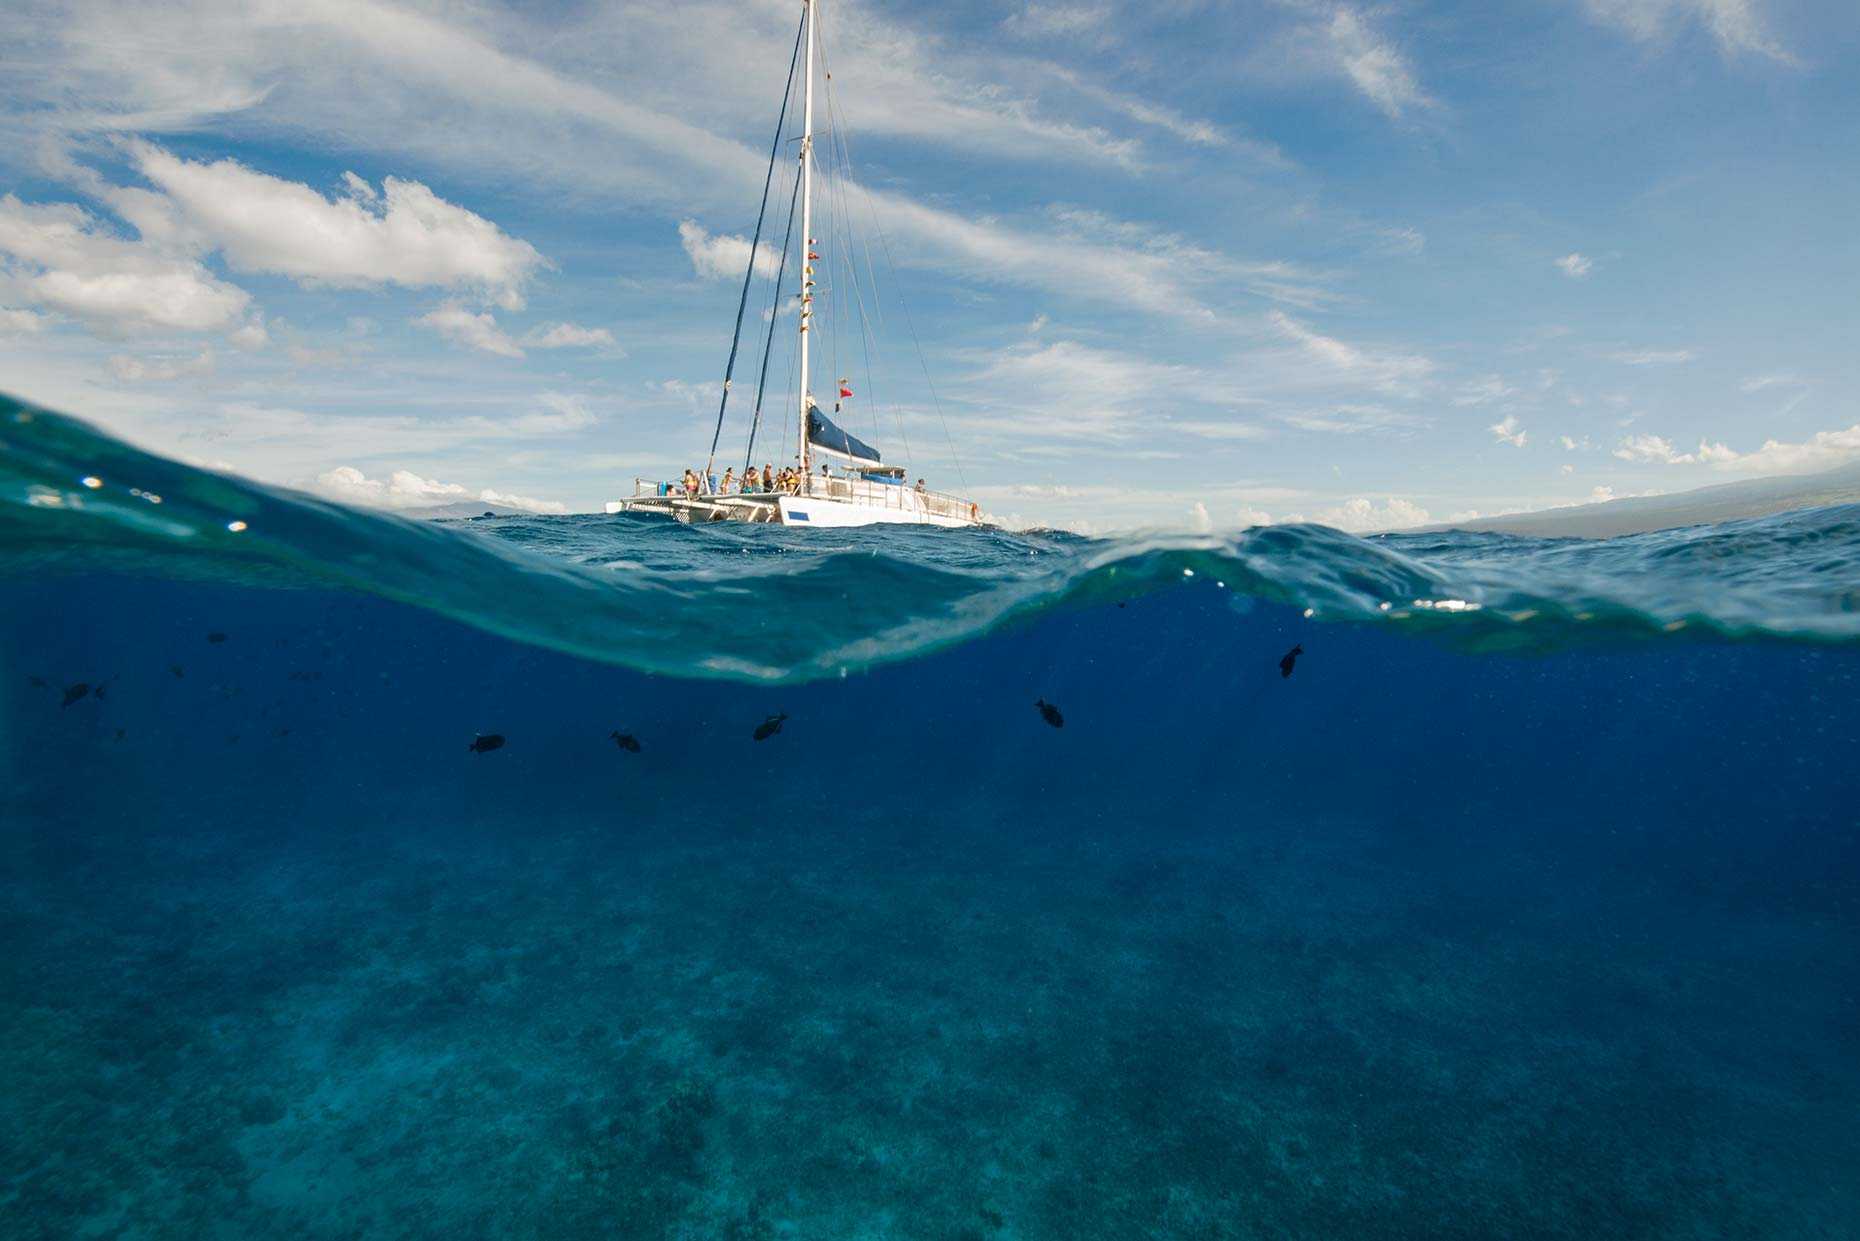 Ian-Coble-Beach-Lifestyle-Resort-Hawaii-Maui-Sailing-Underwater-Snorkeling